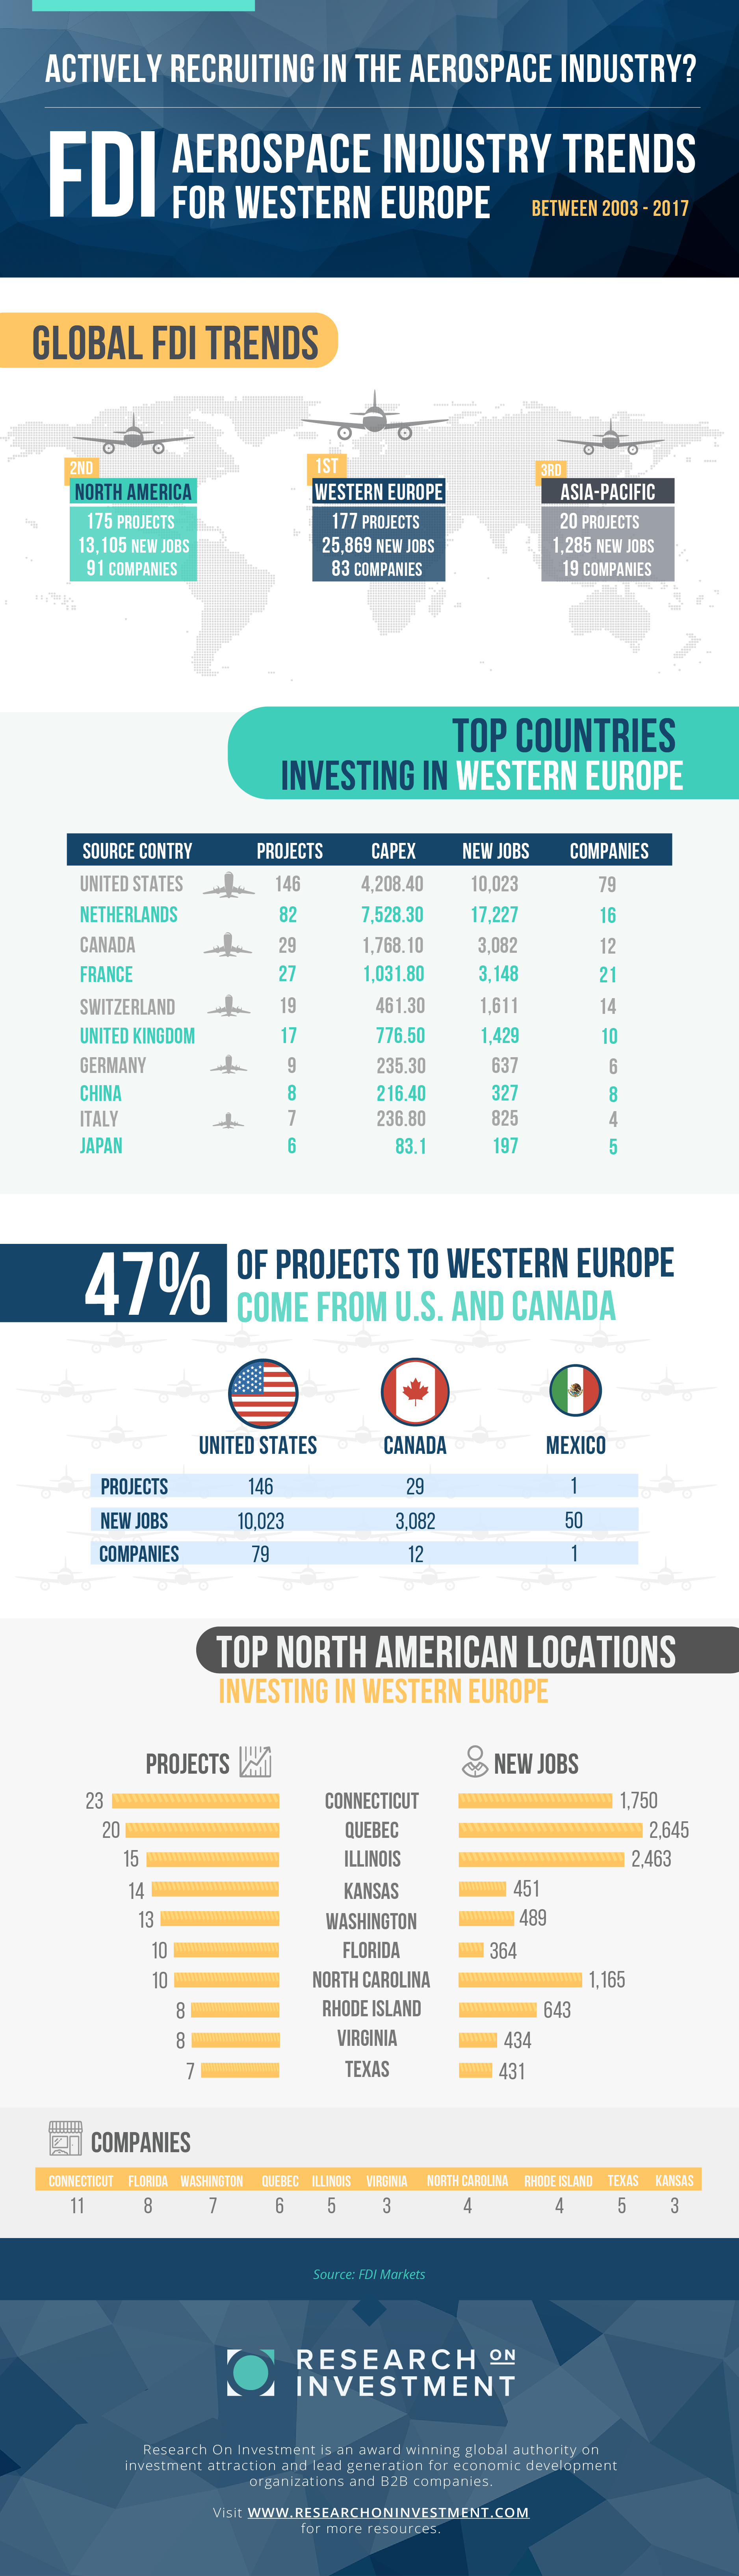 FDI AEROSPACE INDUSTRY TRENDS FOR WESTERN EUROPE Infographic